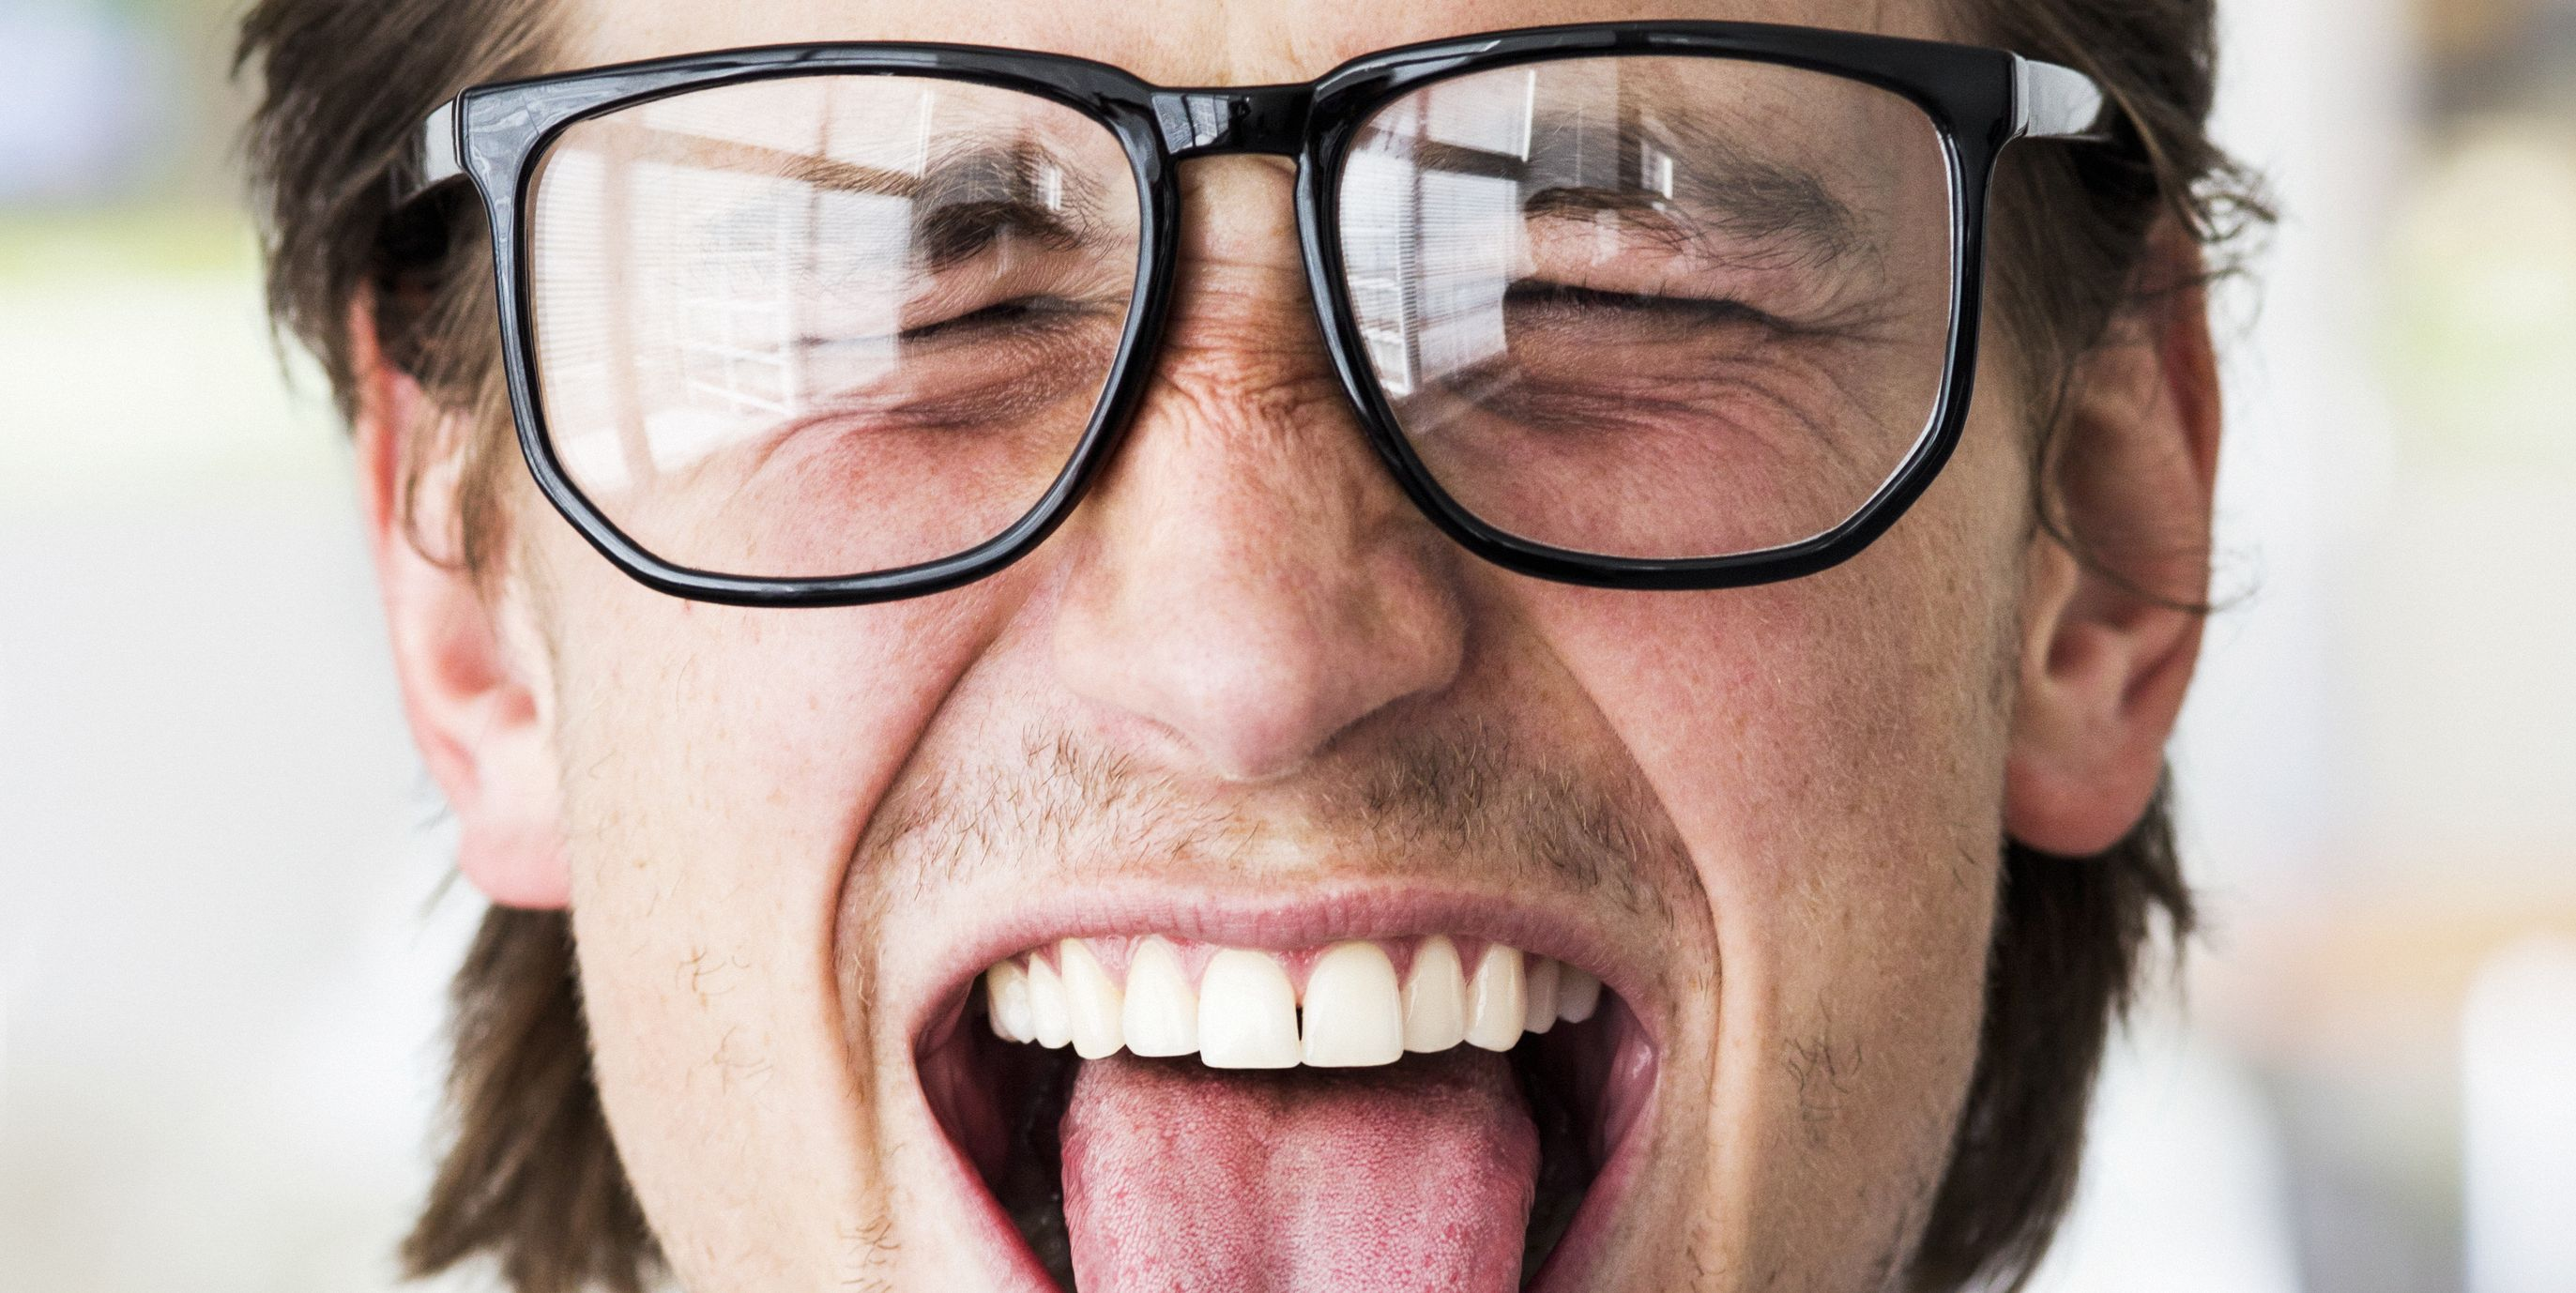 Man with glasses with his tongue out